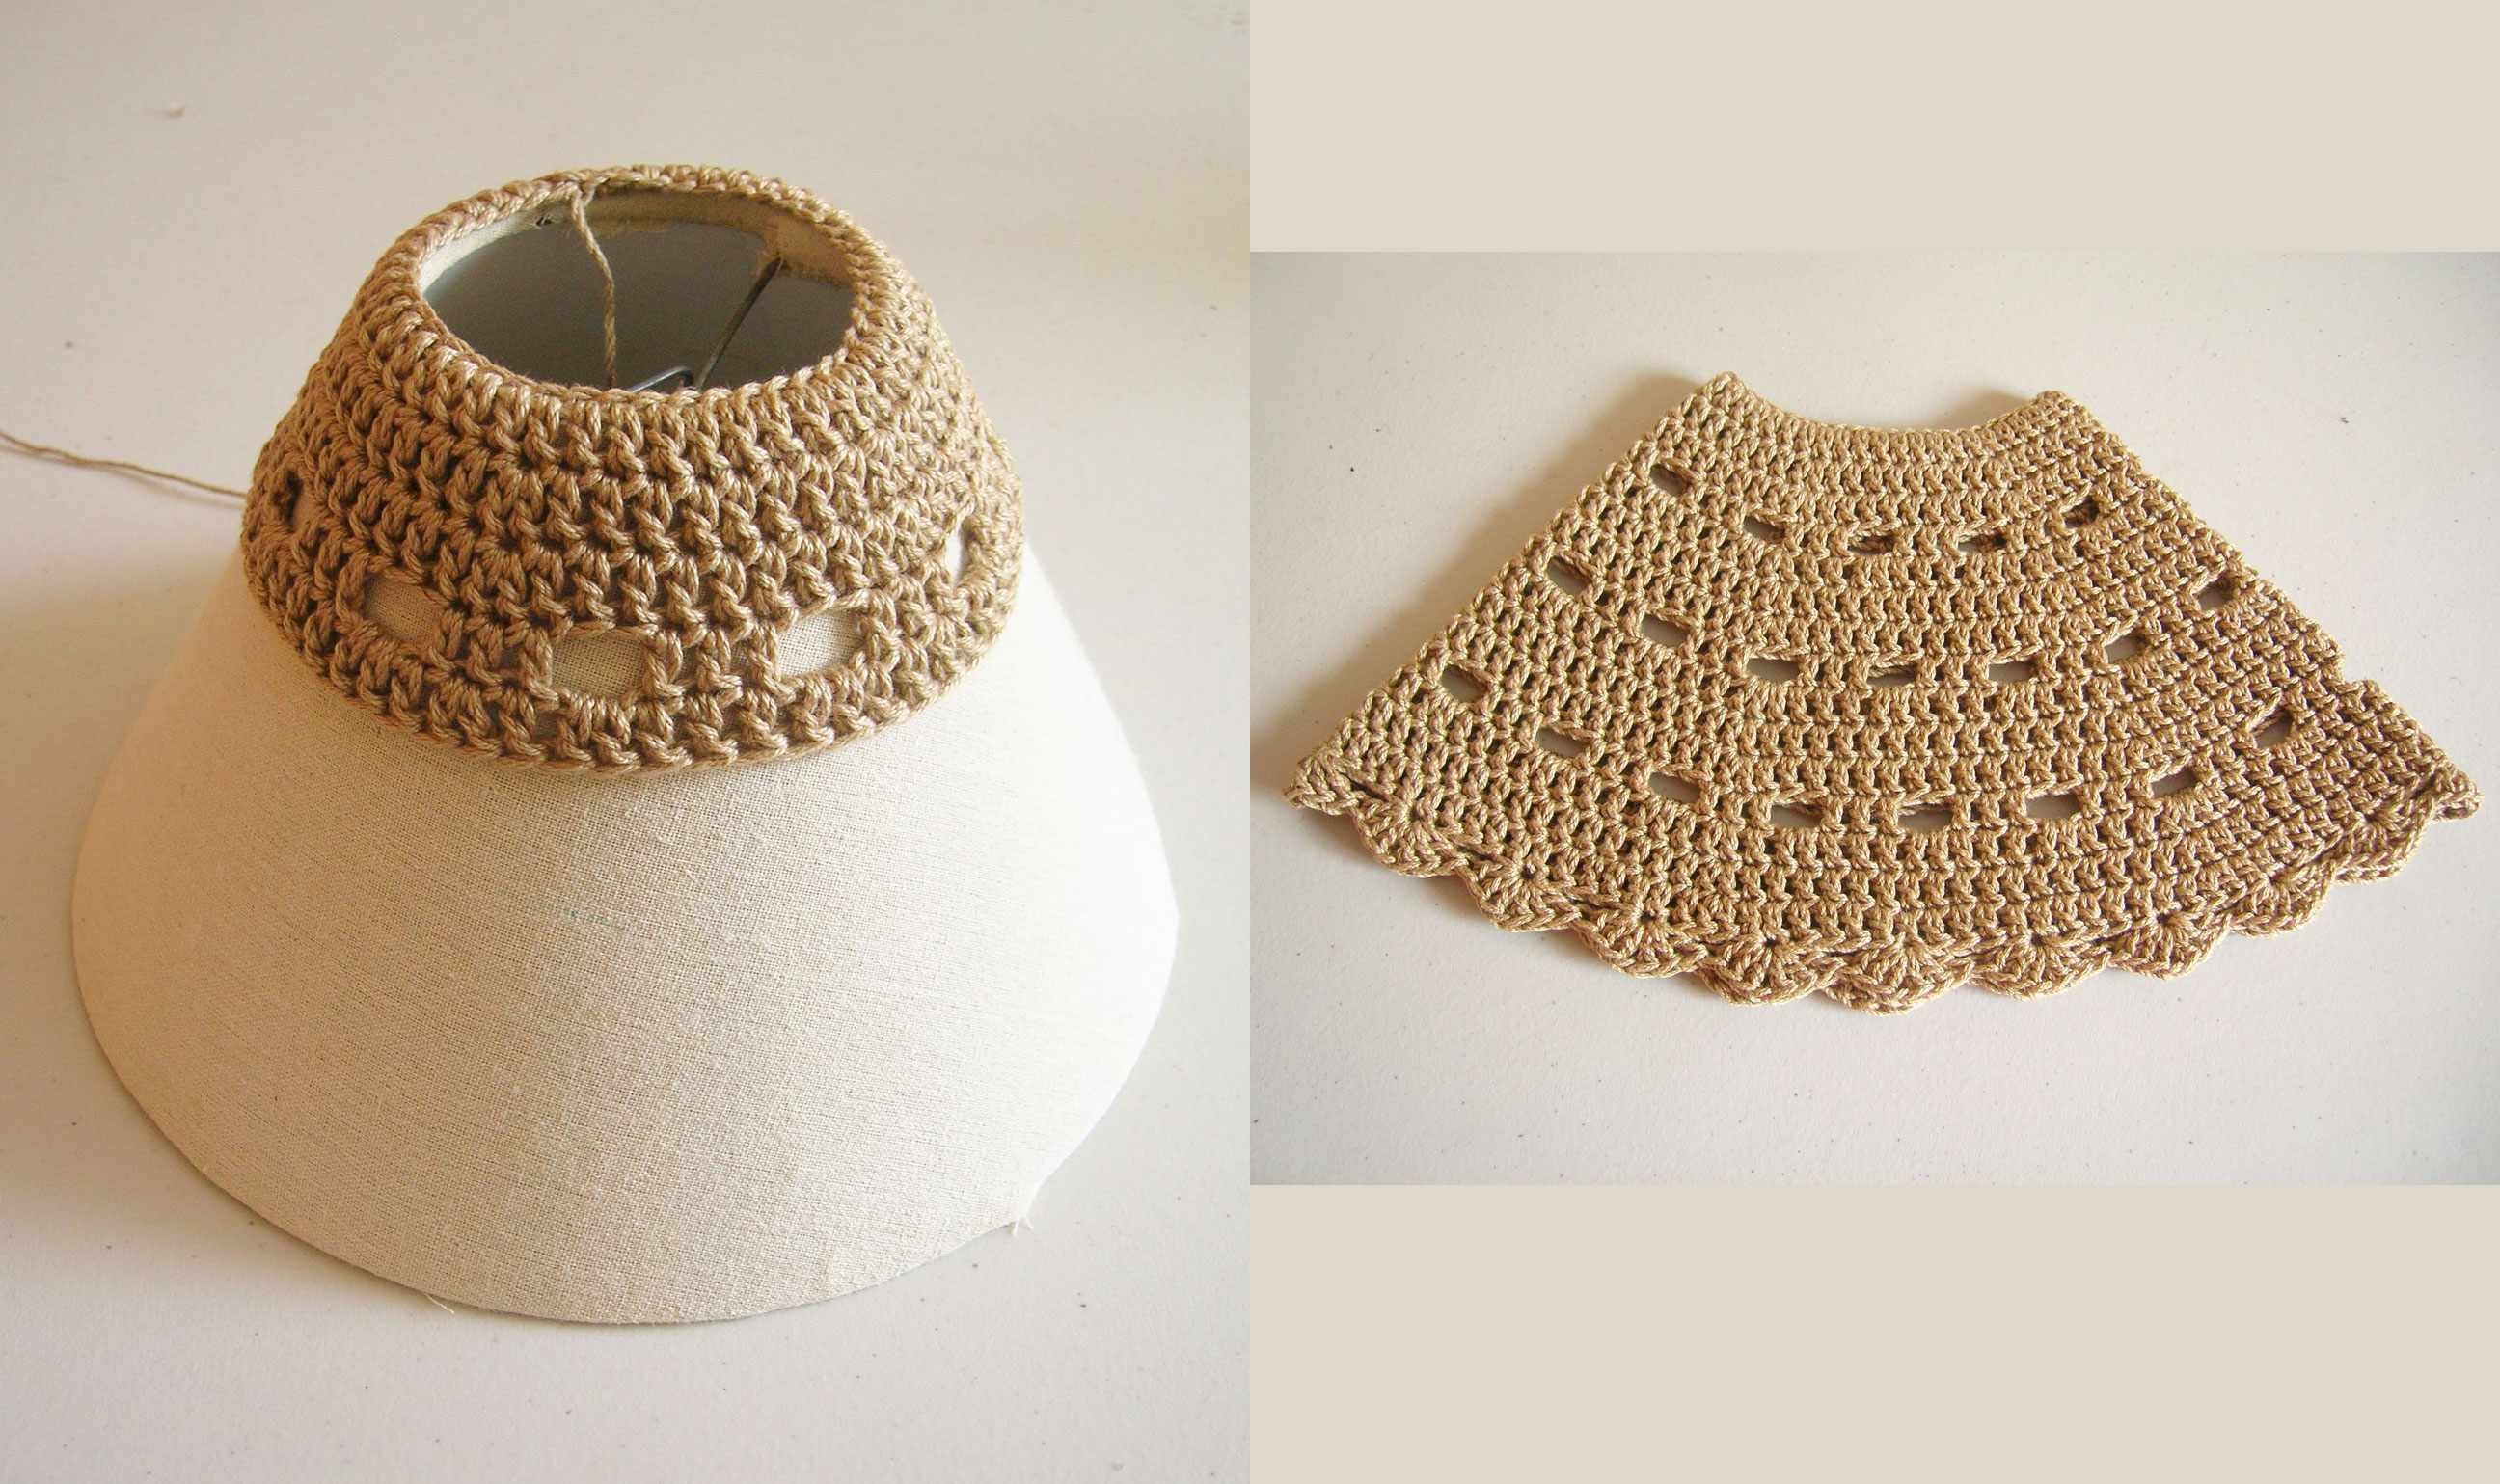 Free Pattern Crochet Lampshade : crochet lampshade Chabepatterns